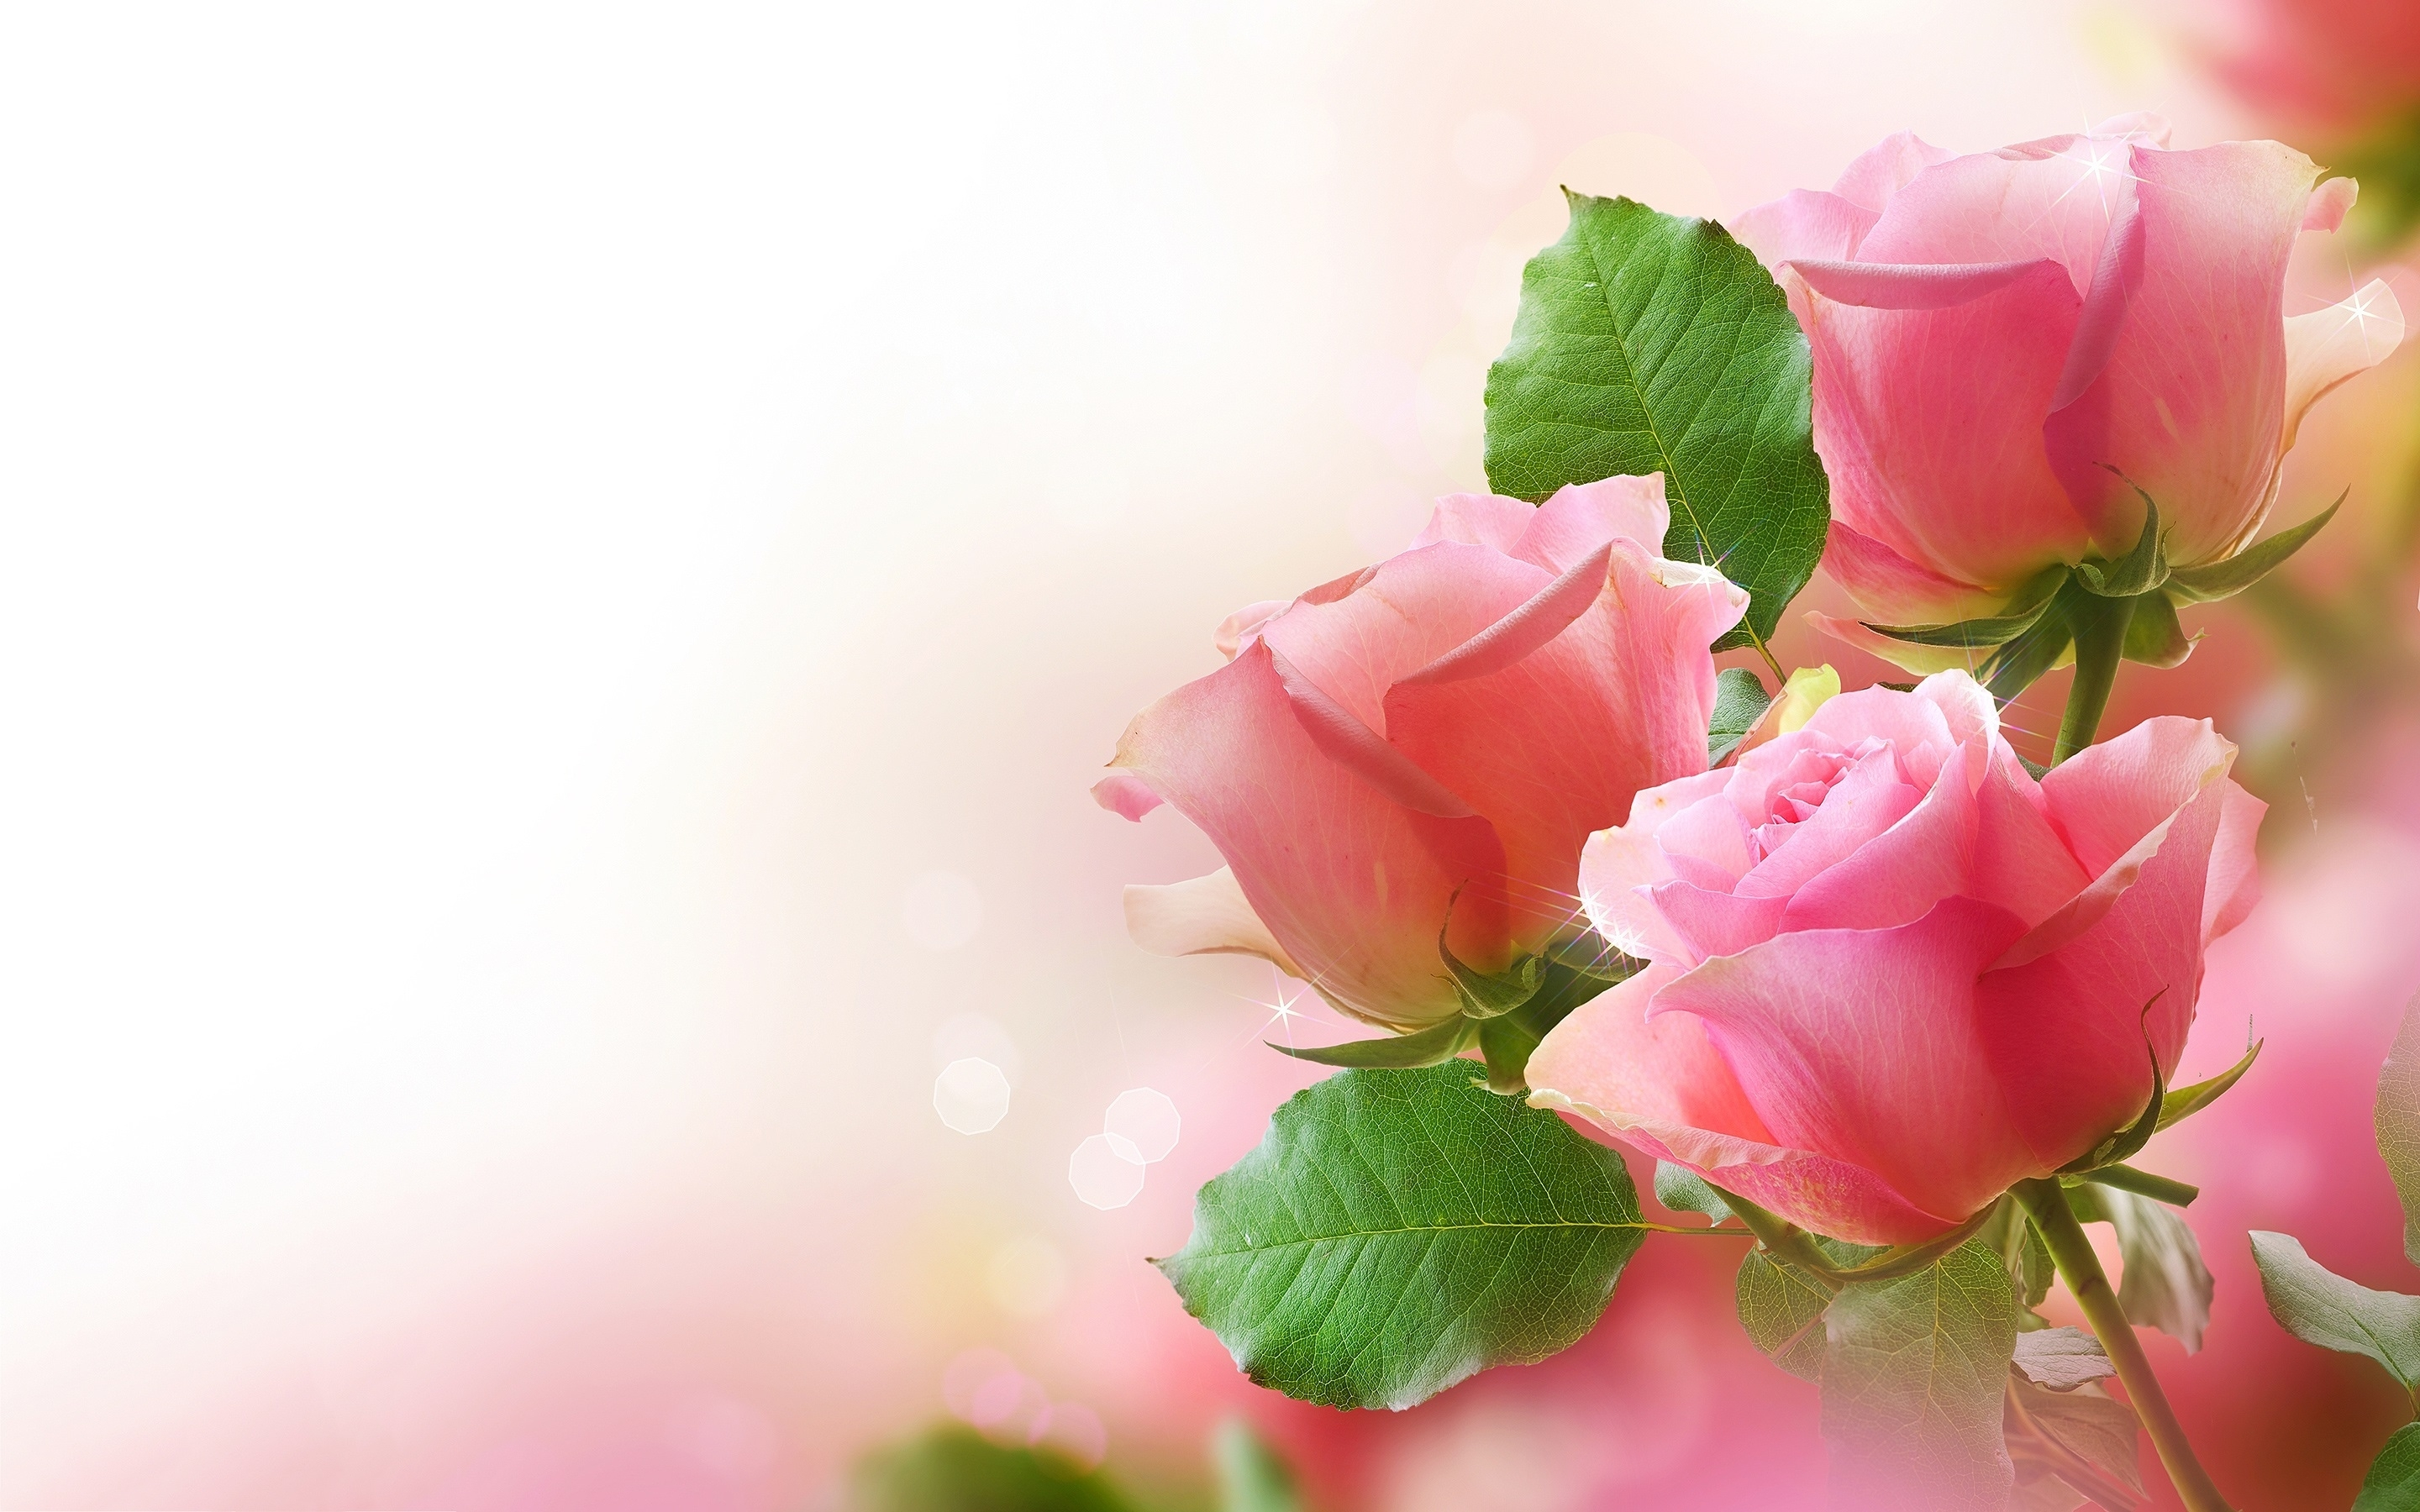 pink roses wide background wallpaper - download hd pink roses wide